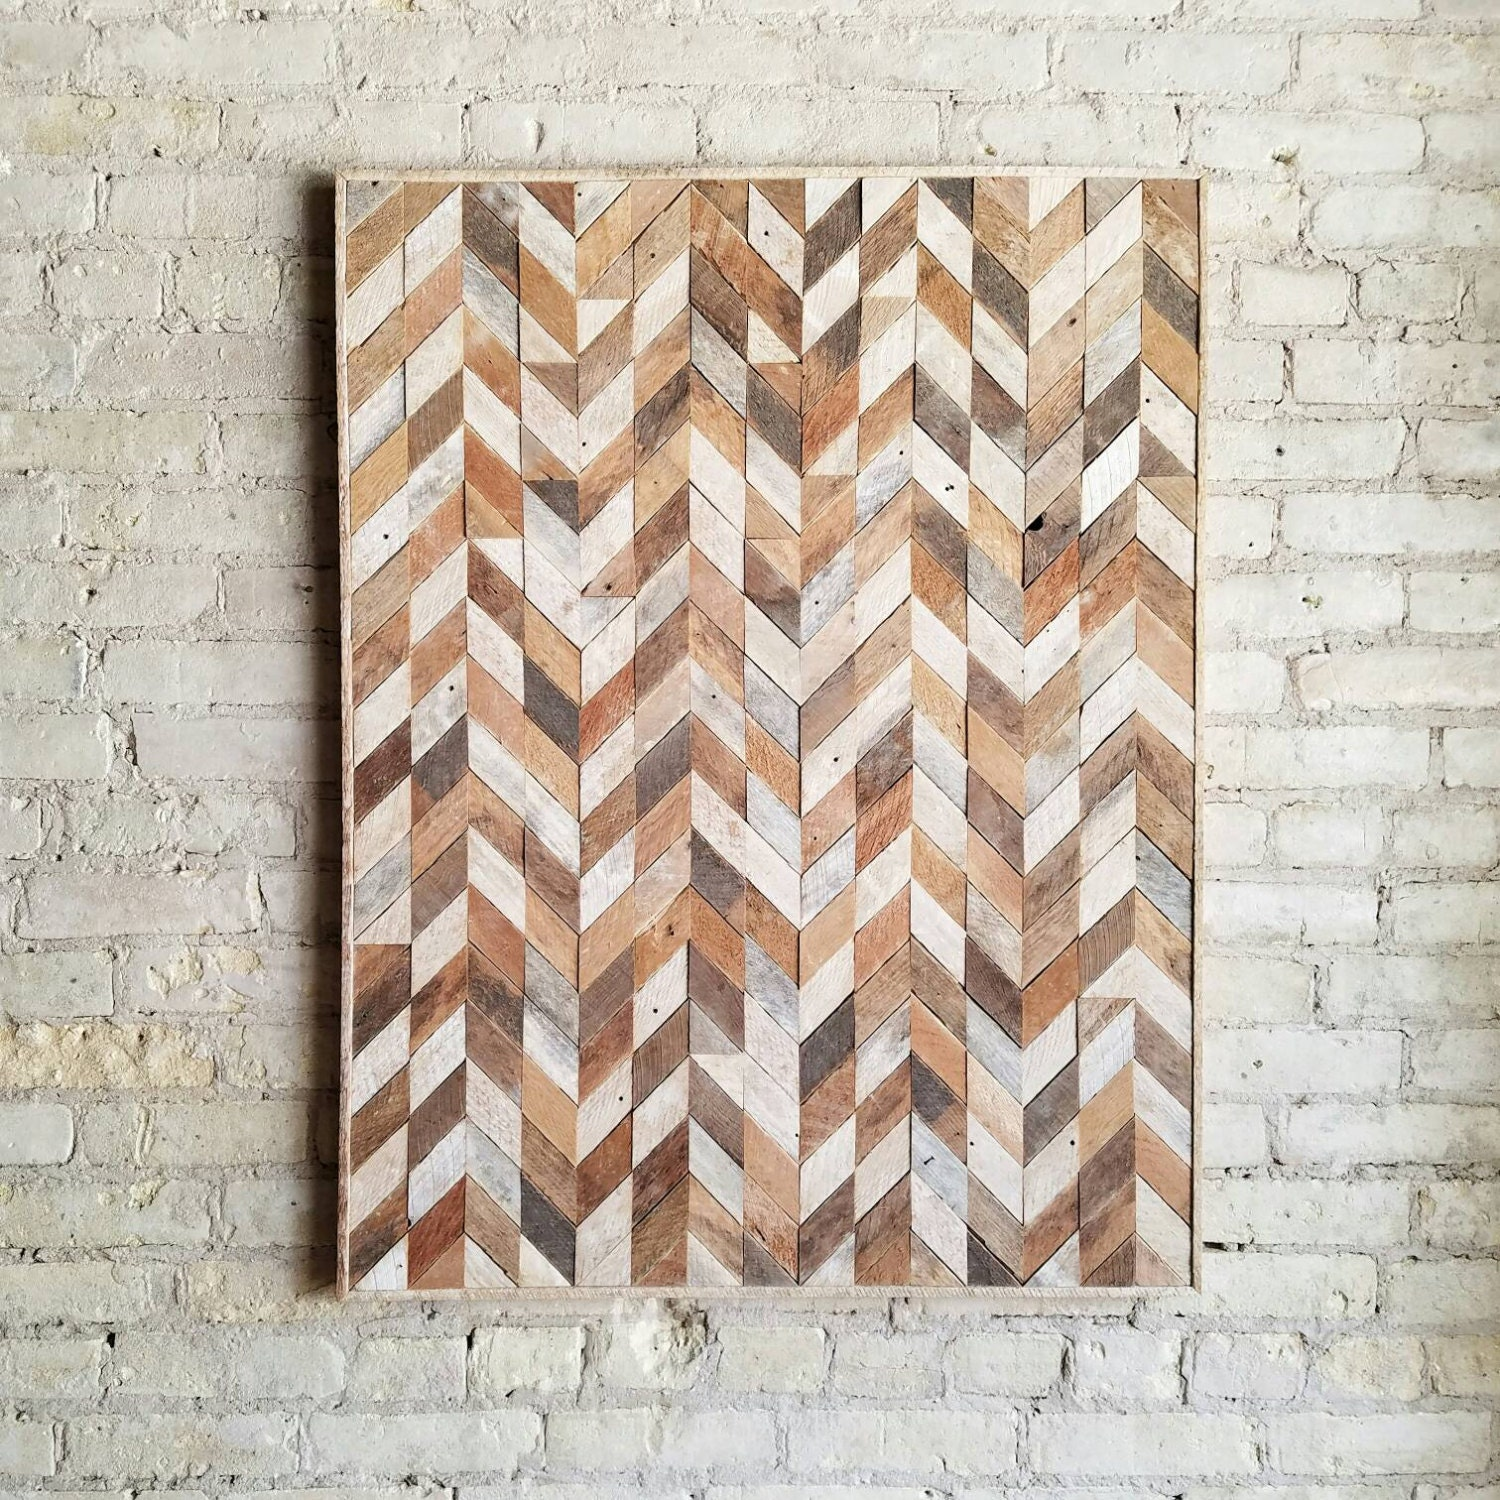 New Wooden Wall Art With Modern Flair